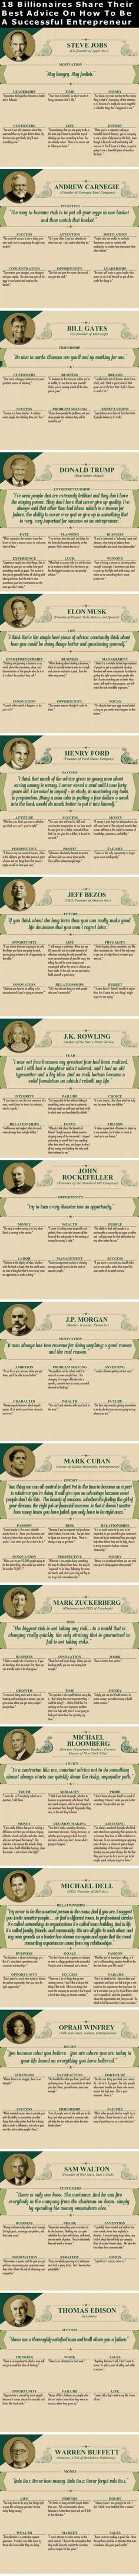 Positive Quotes 18 Billionaires Share Their Best Advice On How To Become A Successful Entrepreneur success business tips facts self improvement wealth billionaires infographics entrepreneur self help tips on self improvement entrepreneurship entrepreneur Business Quotes, Business Tips, Successful Business, Successful People, Motivation, Leadership, Guter Rat, What Is Social, Become A Millionaire